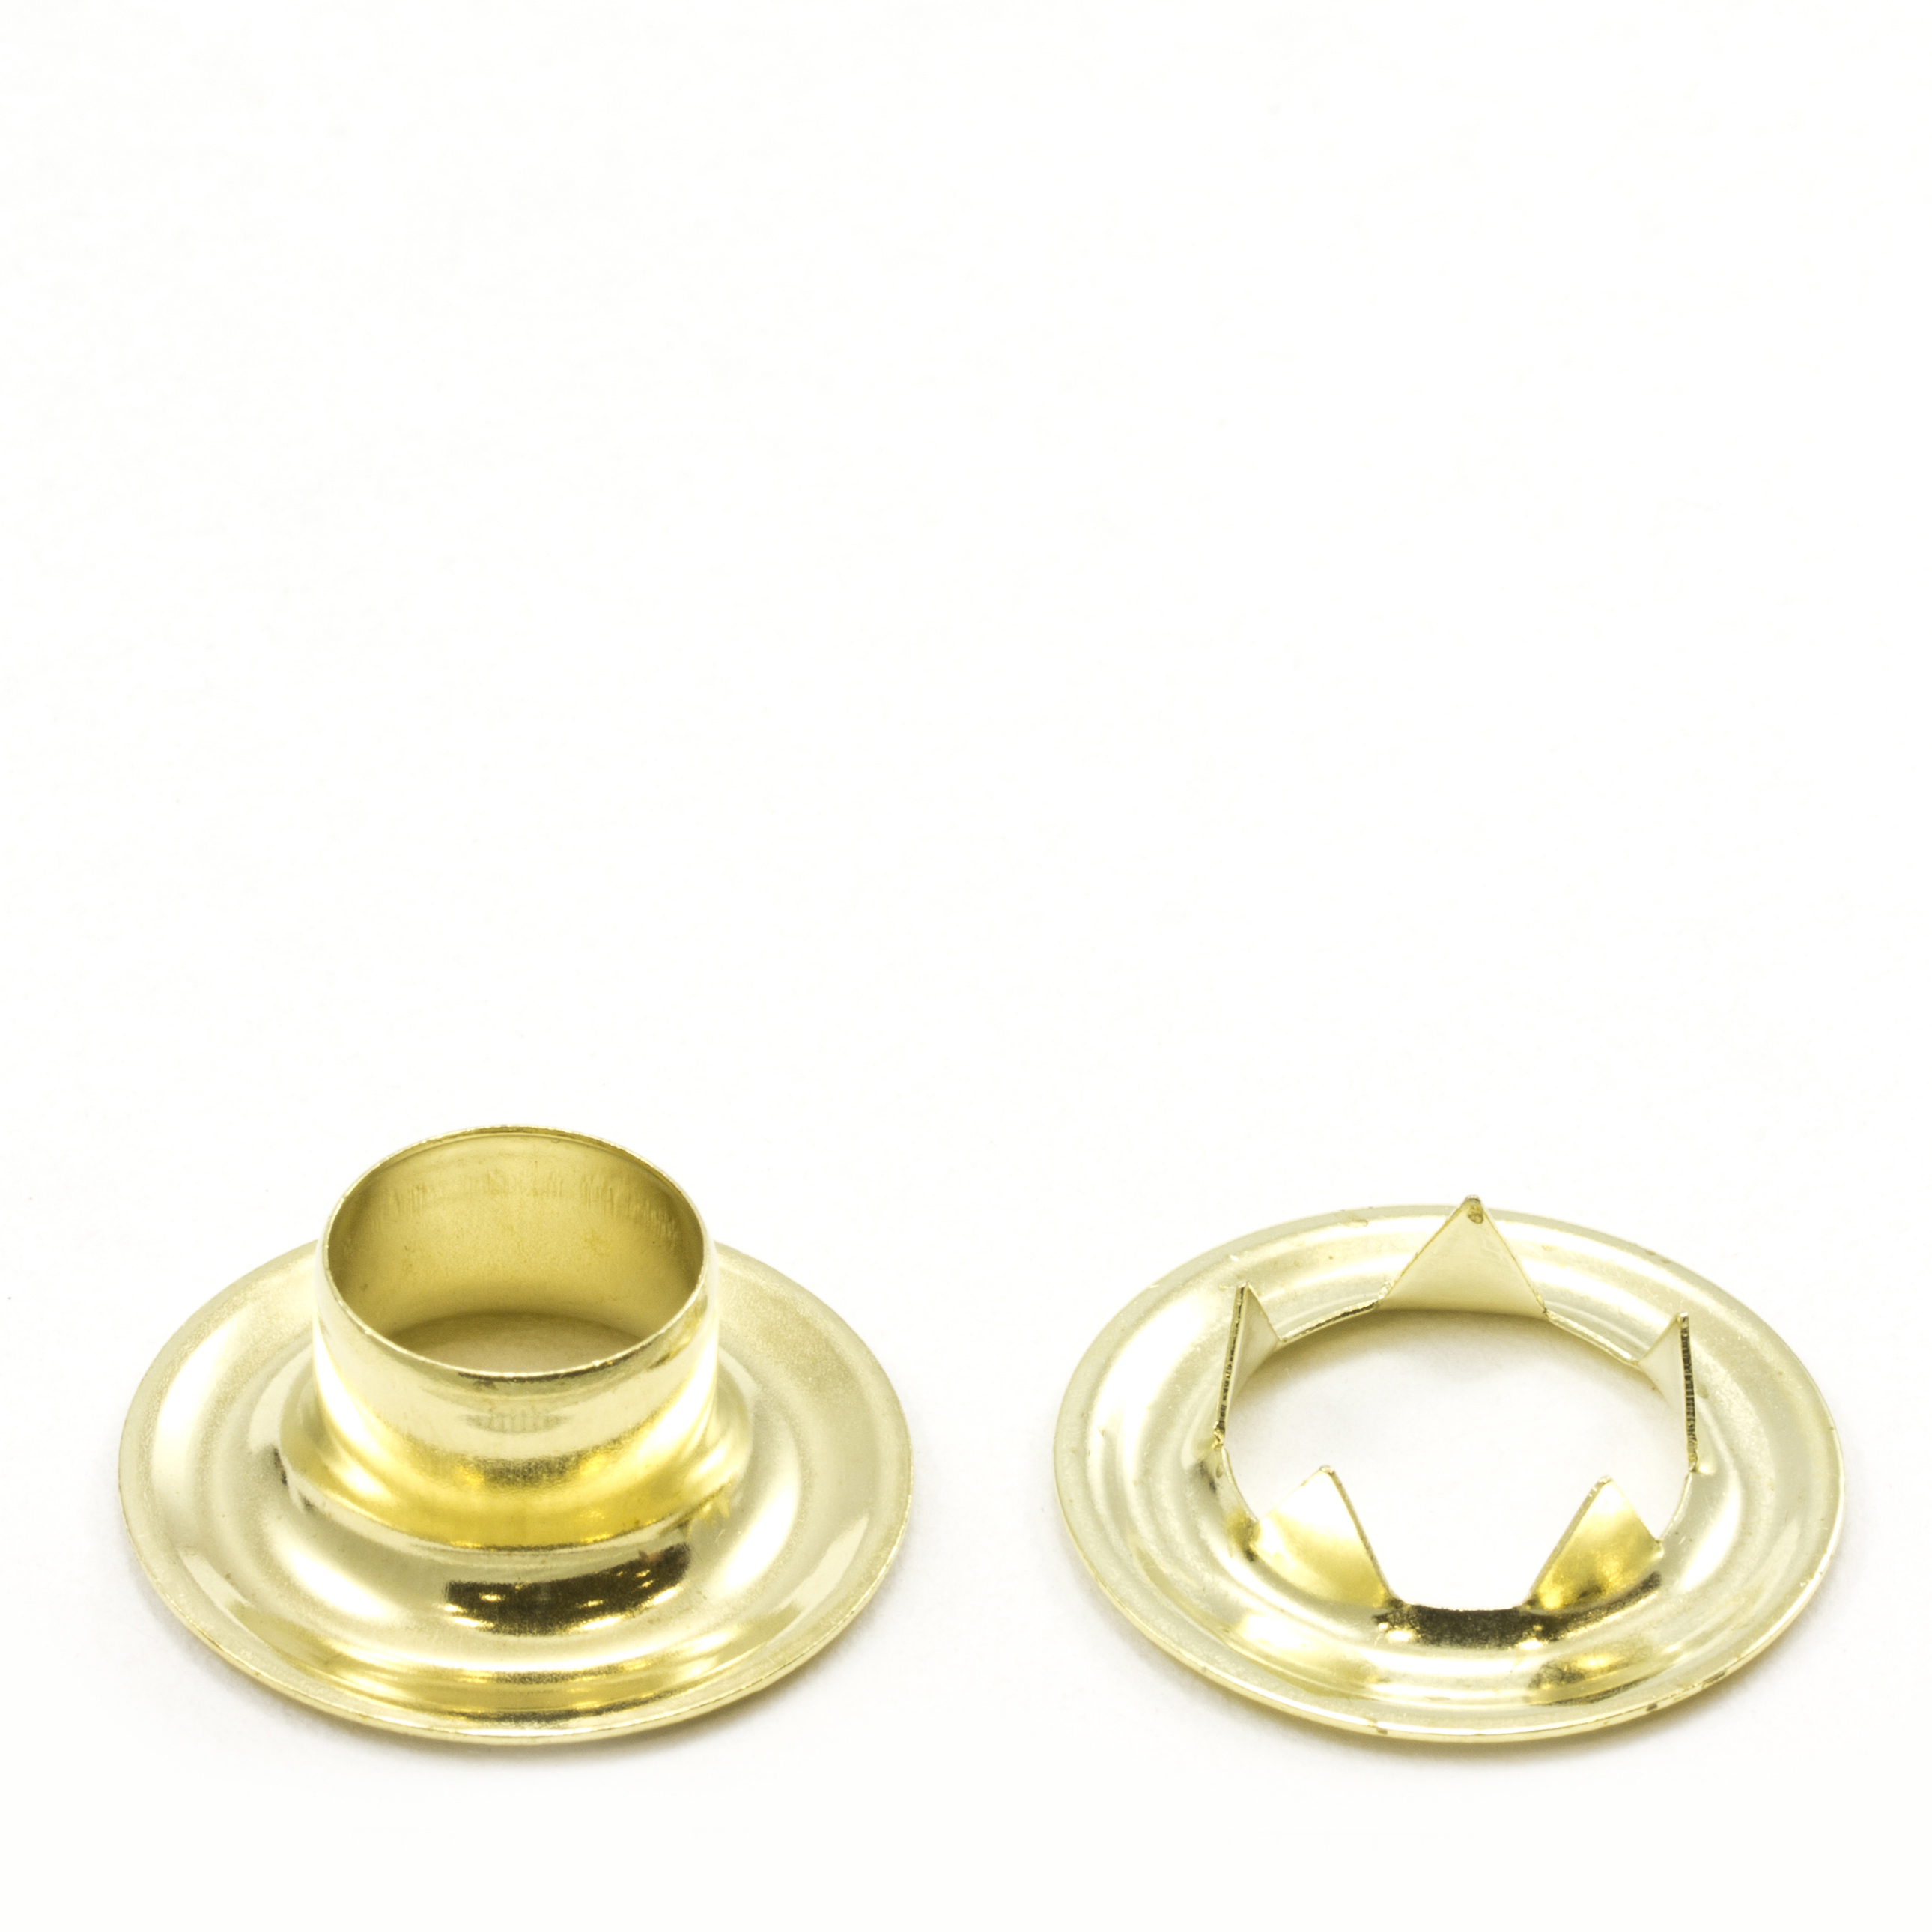 Grommet with Tooth Washer #4 Brass 1/2